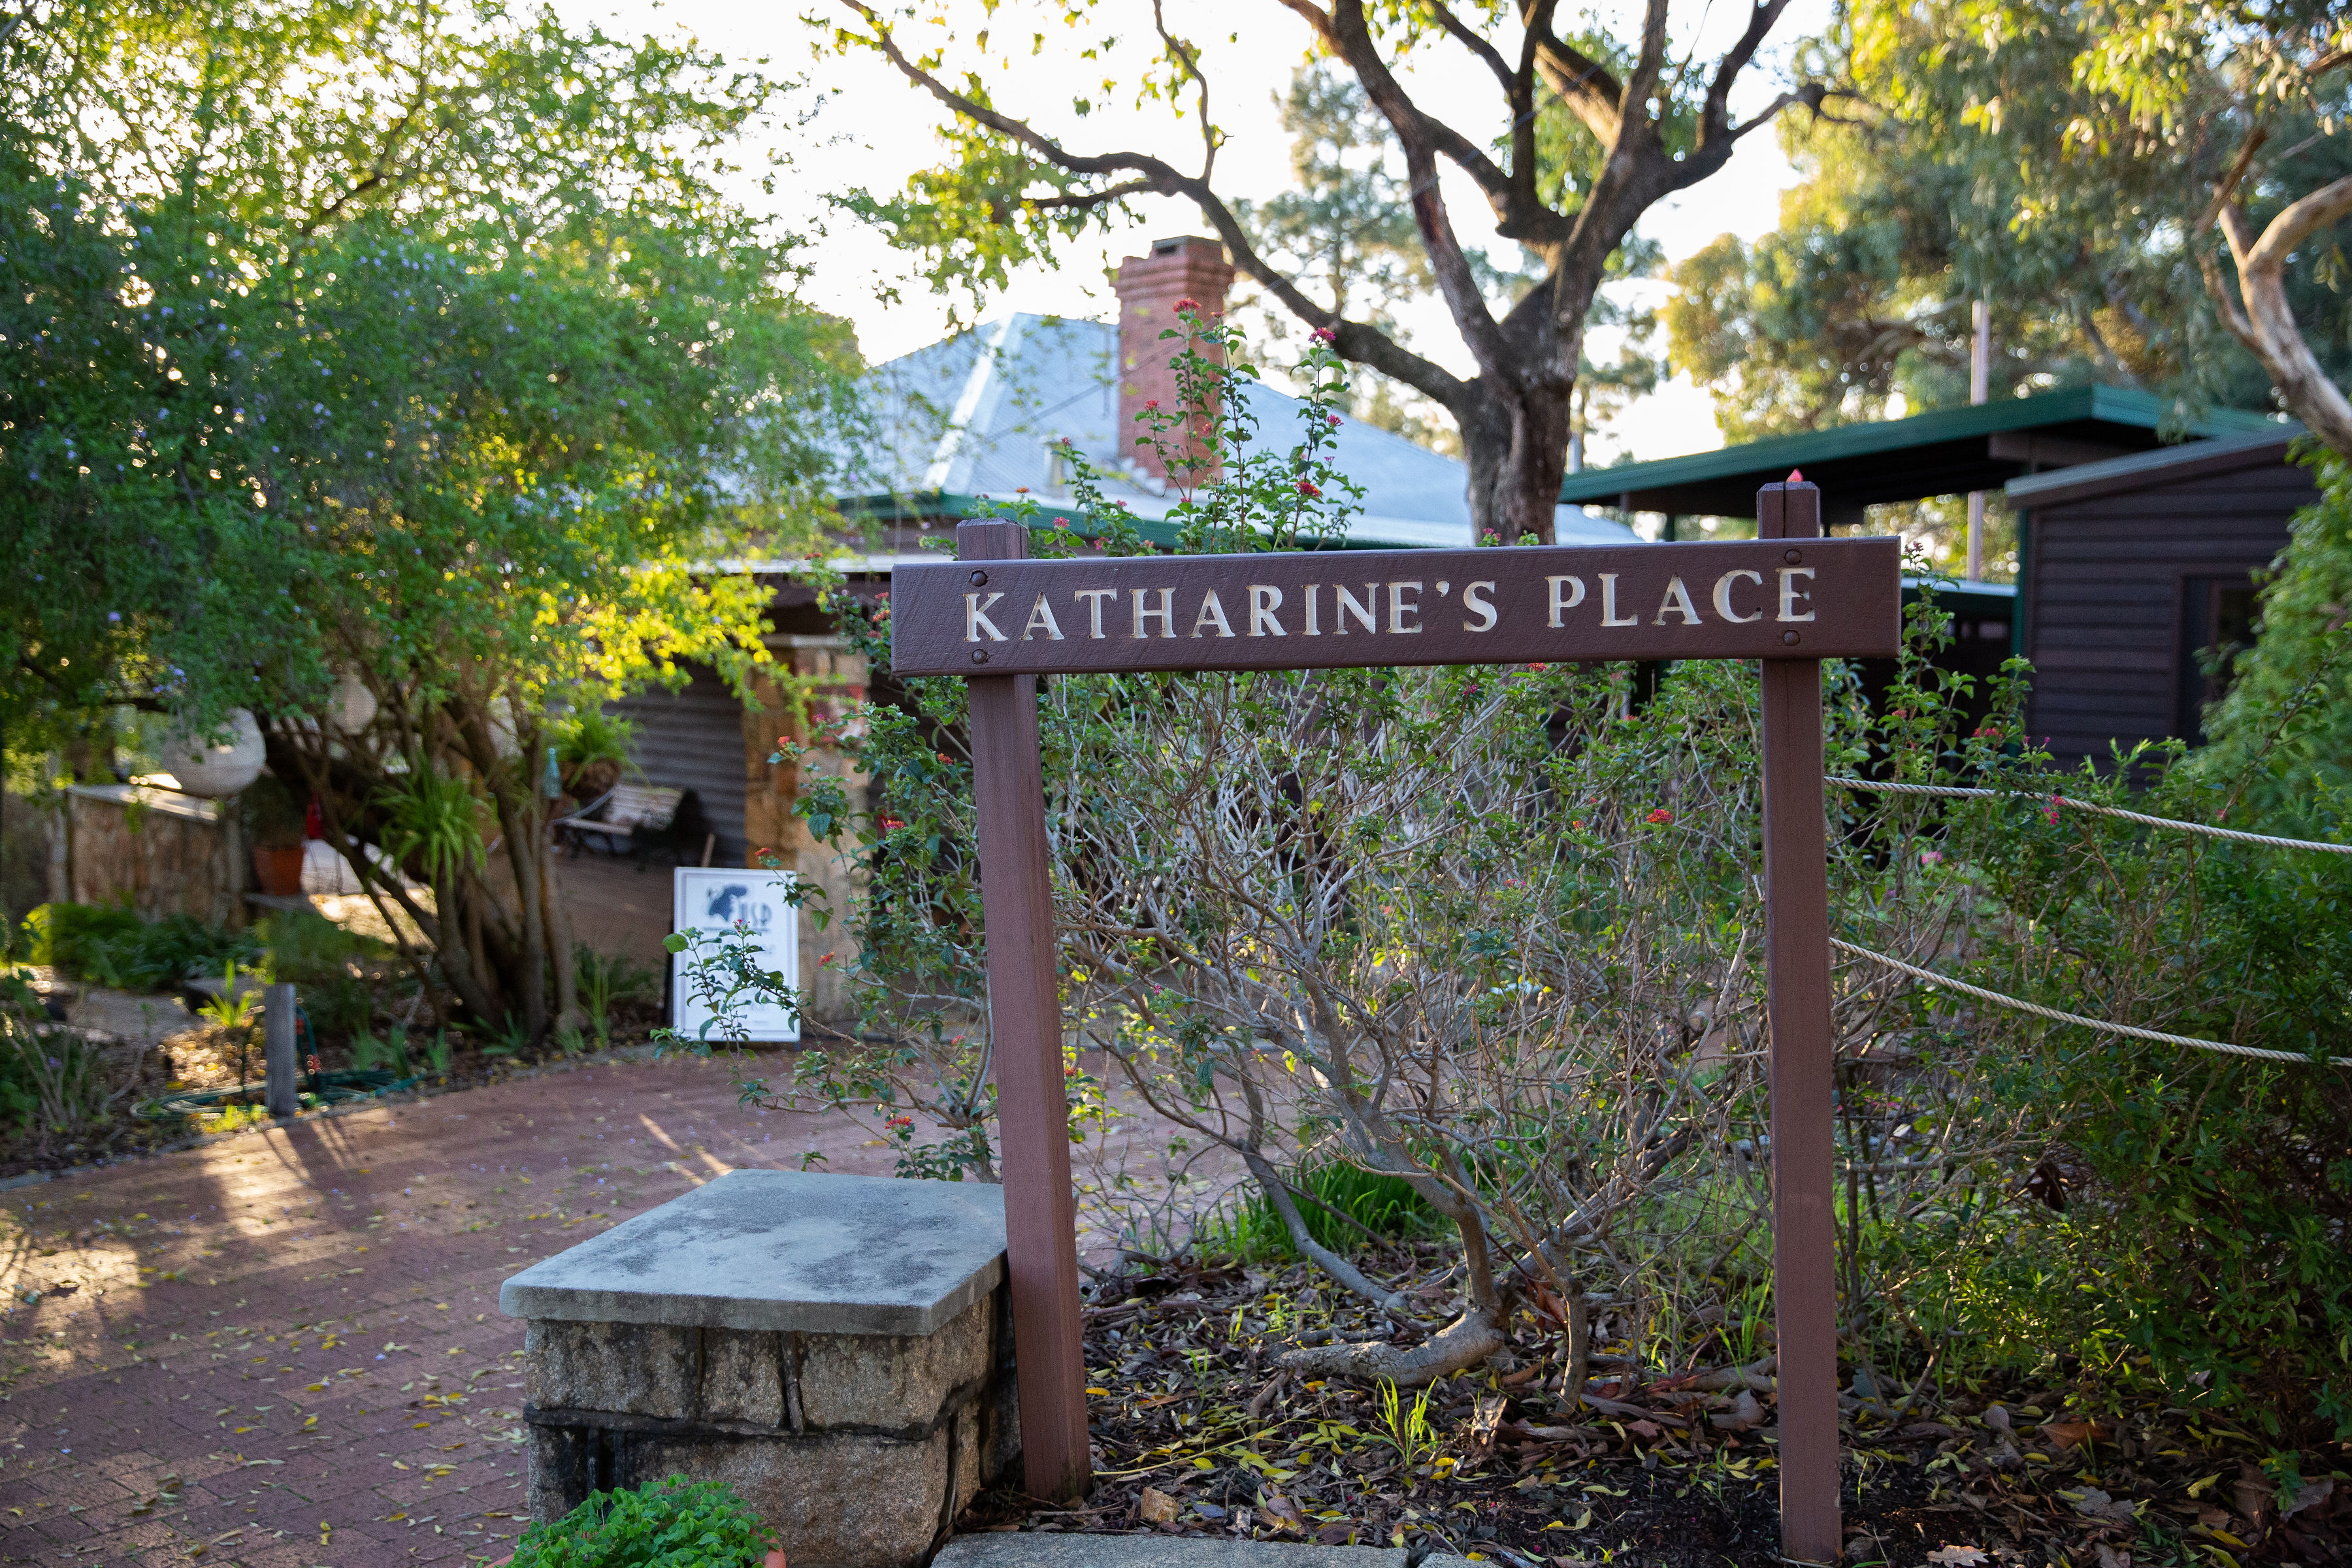 Katharine's Place